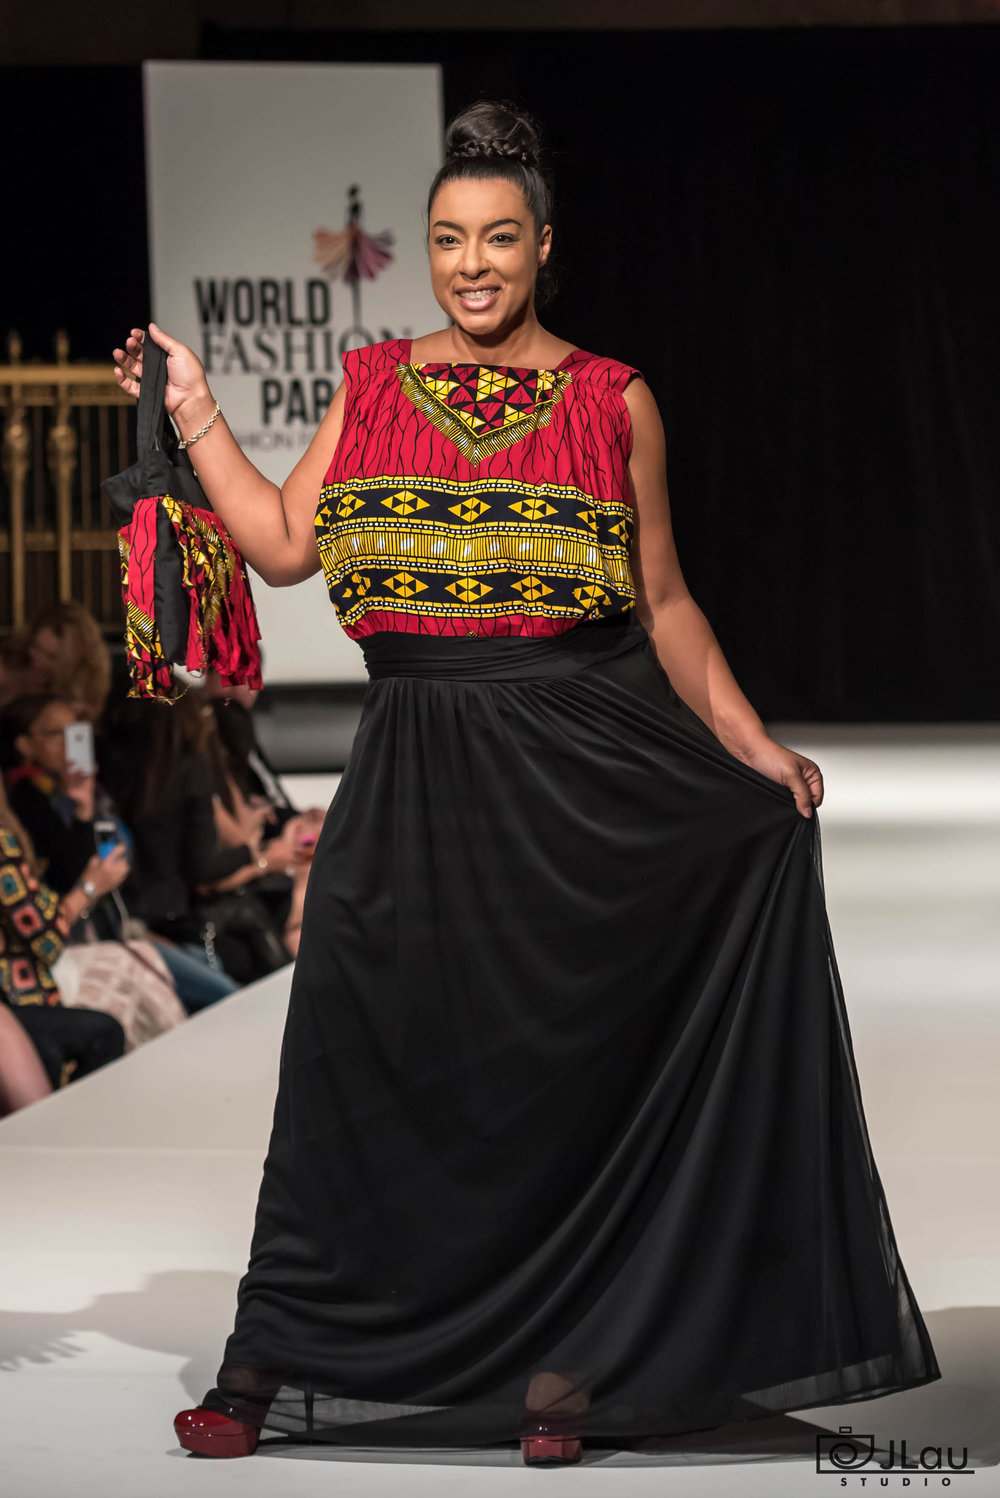 World Fashion Parade Designer: Egypt Ufele